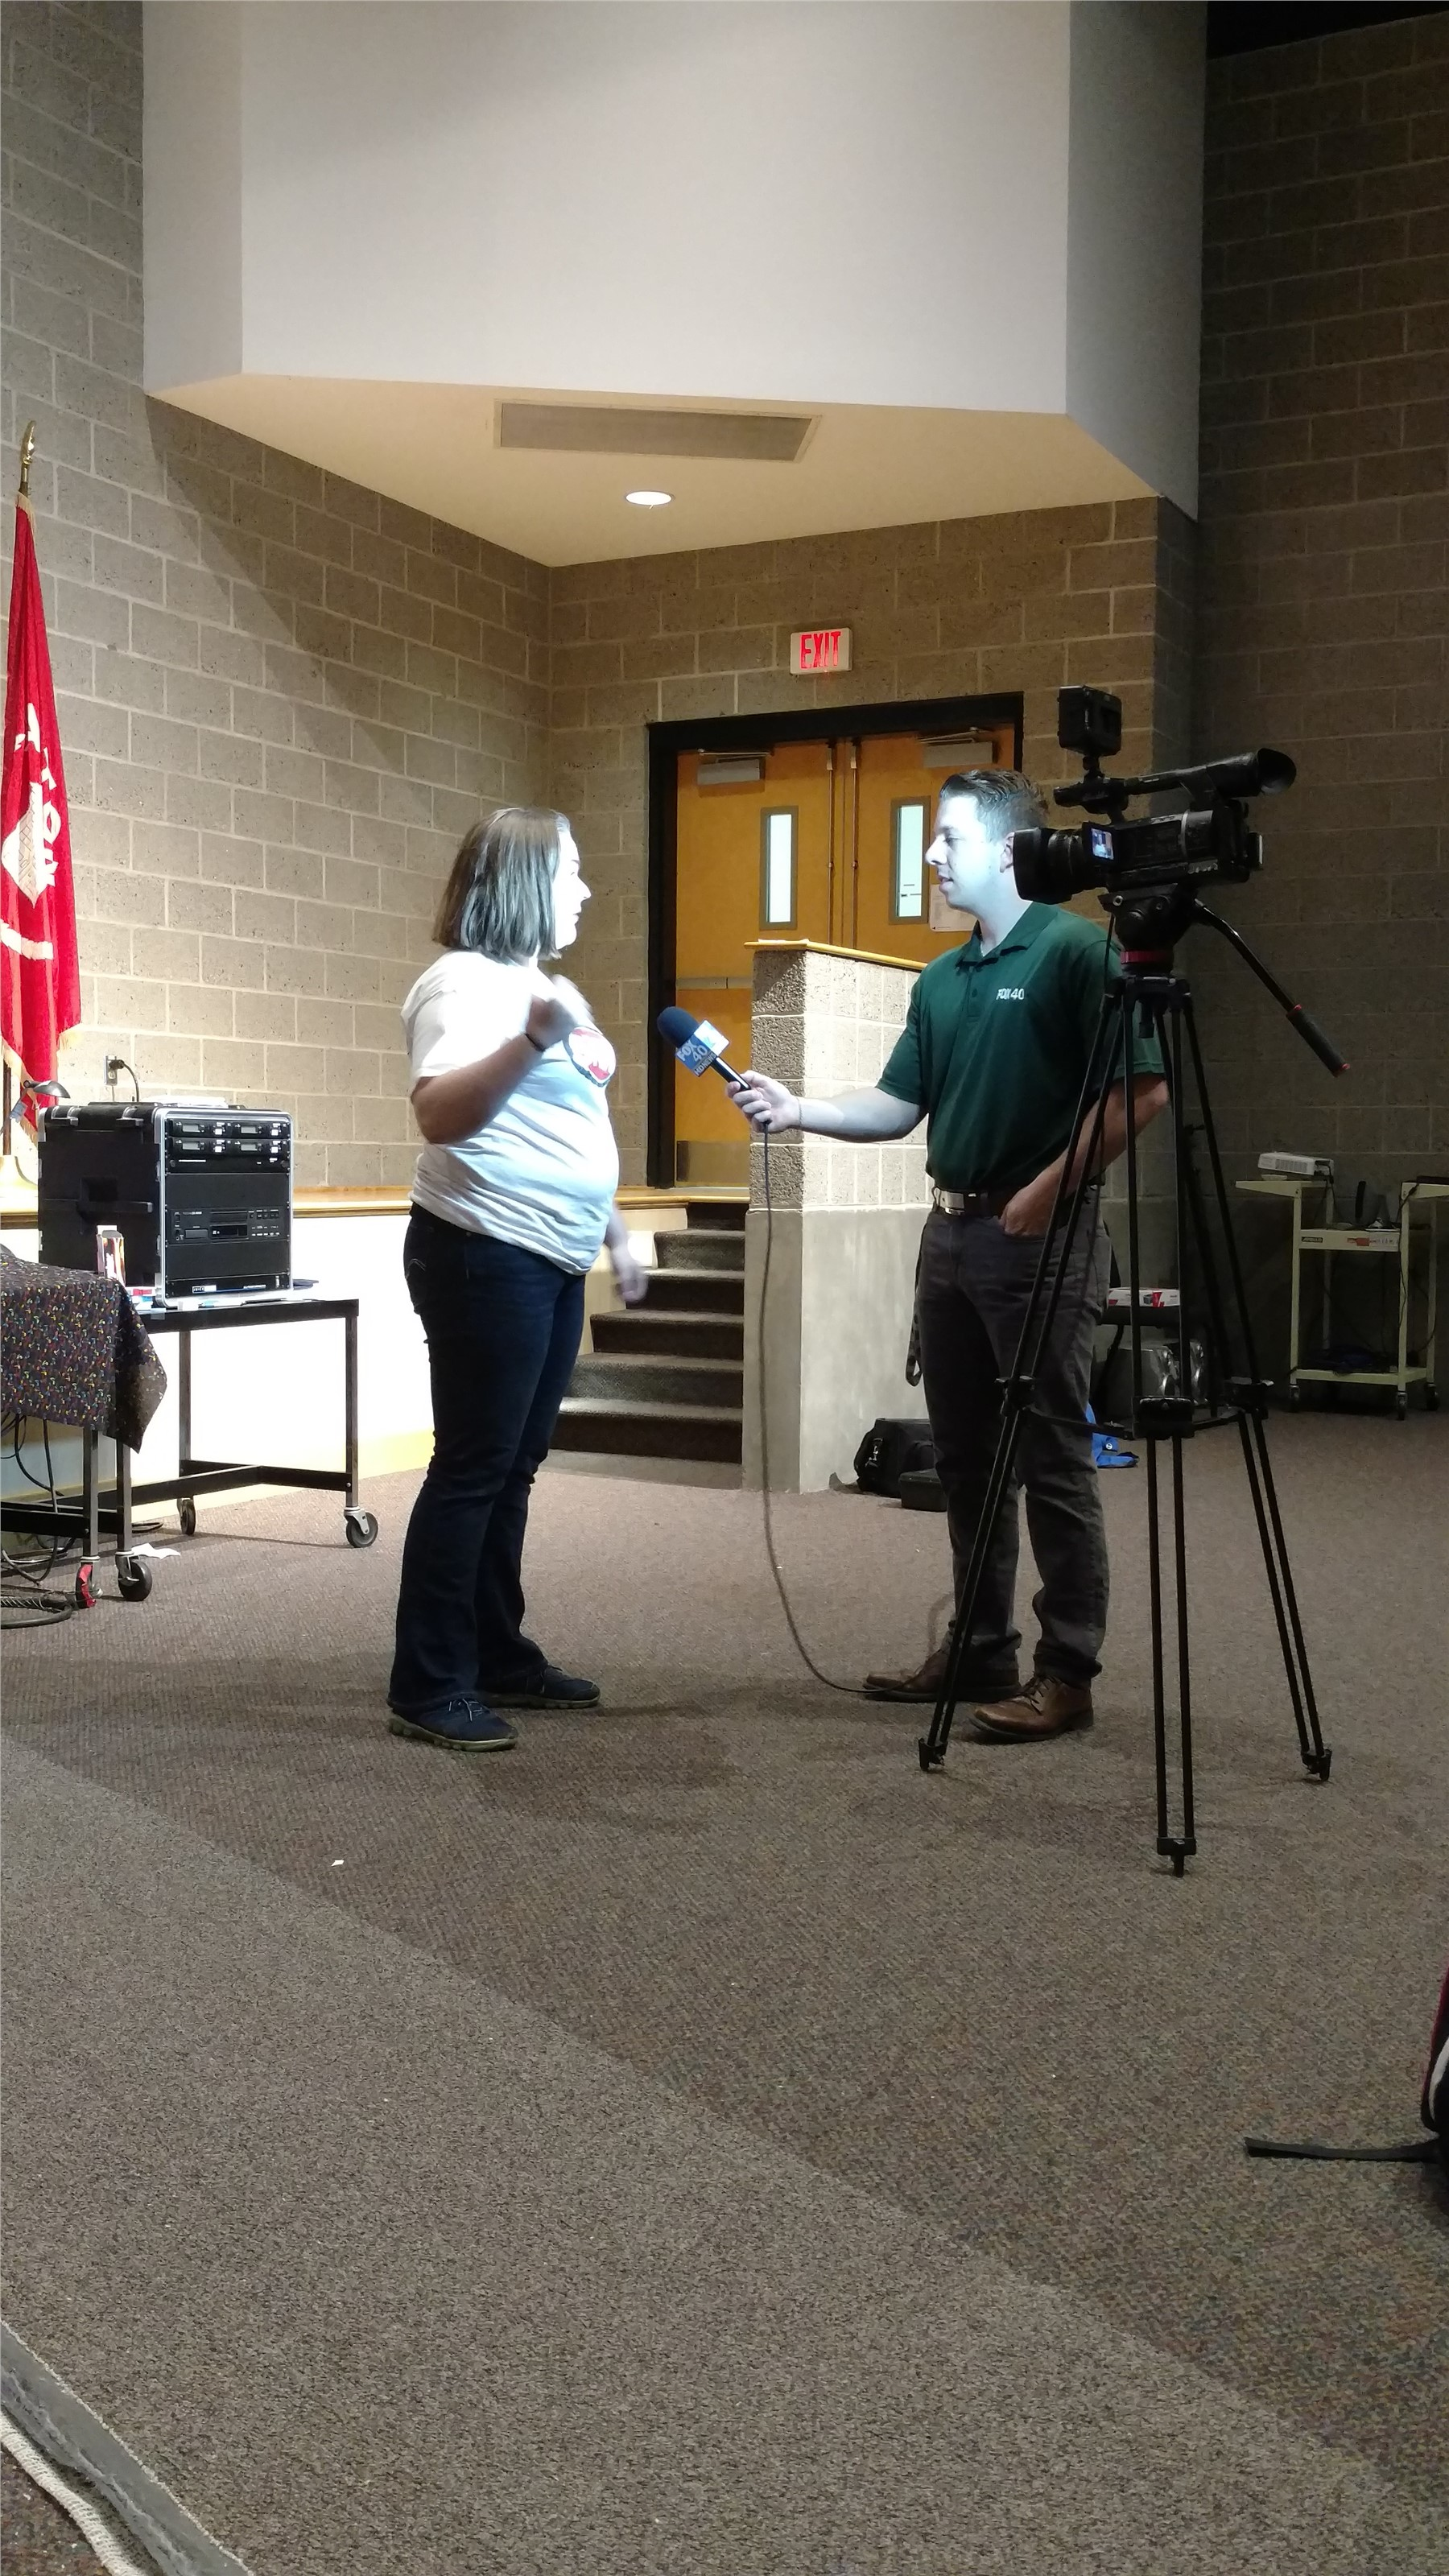 Afton student being interviewed on camera for local news media.